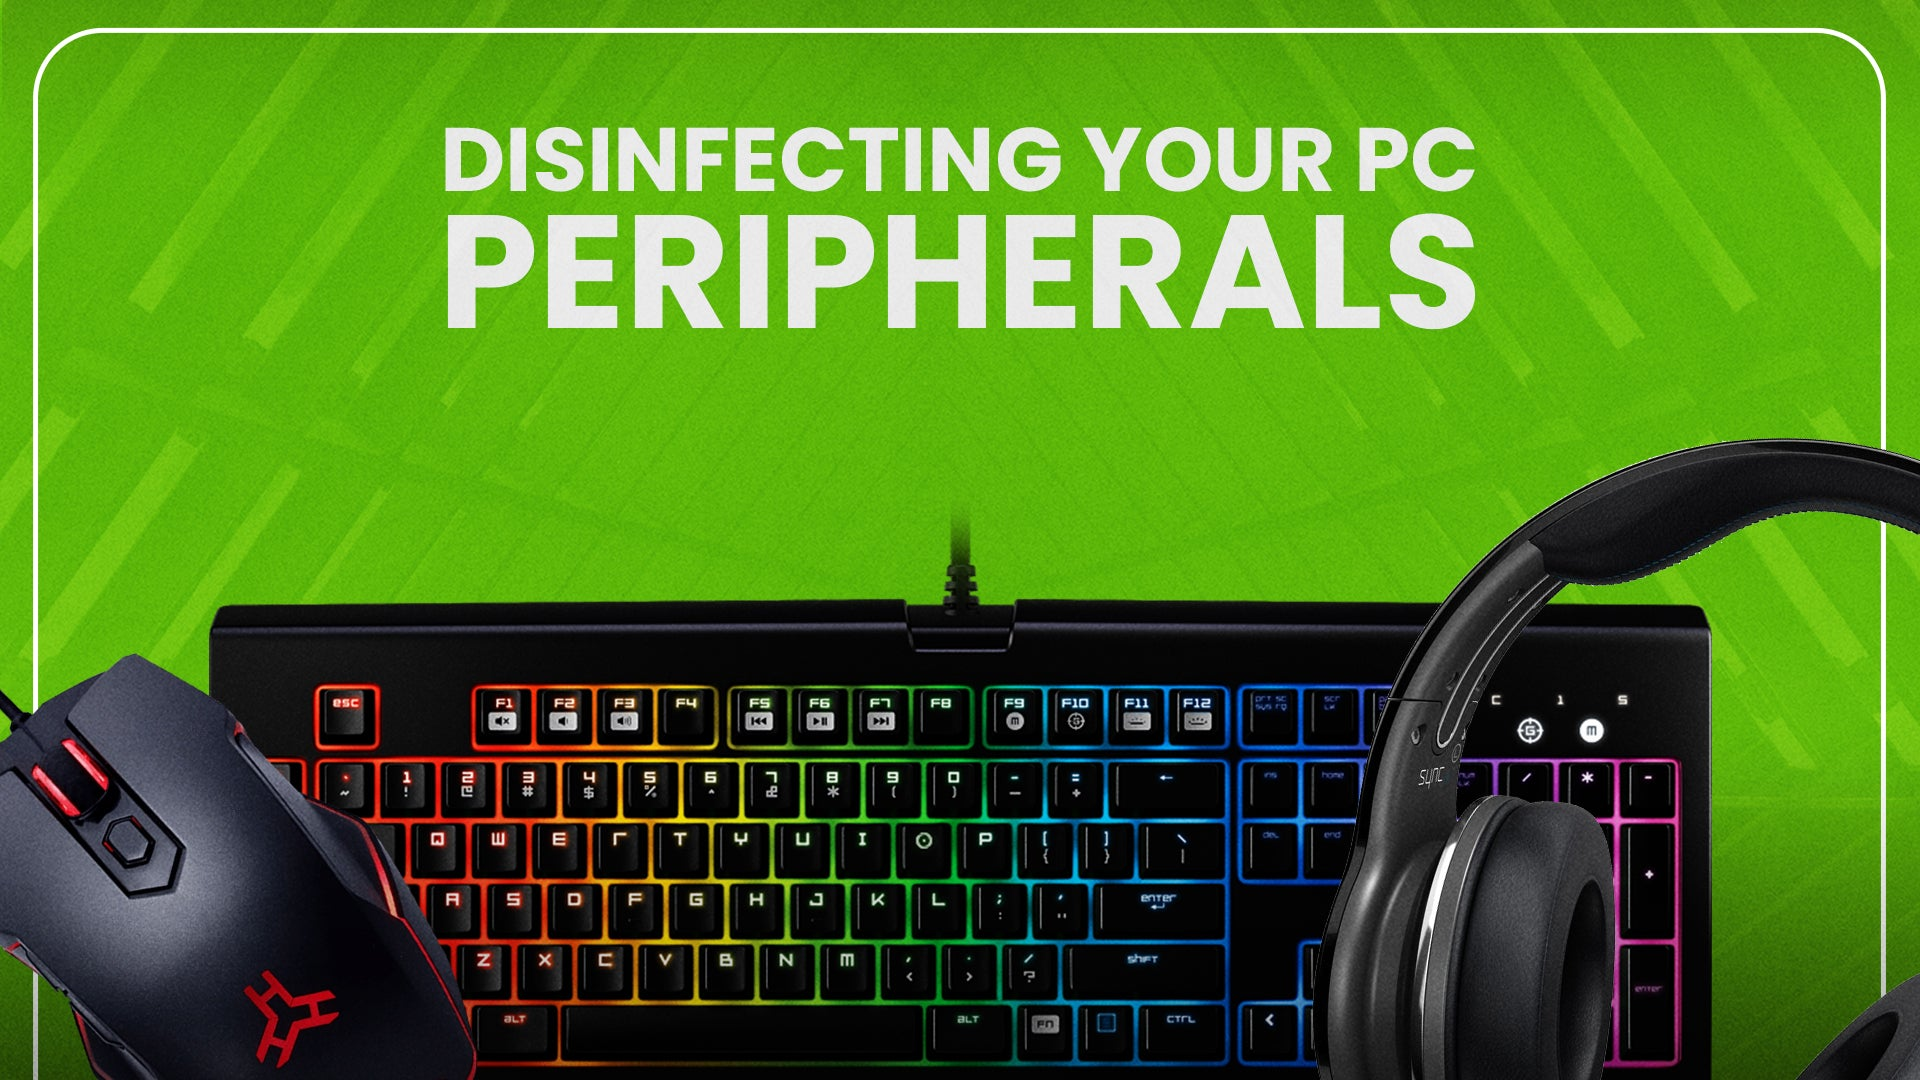 Disinfecting your PC Peripherals